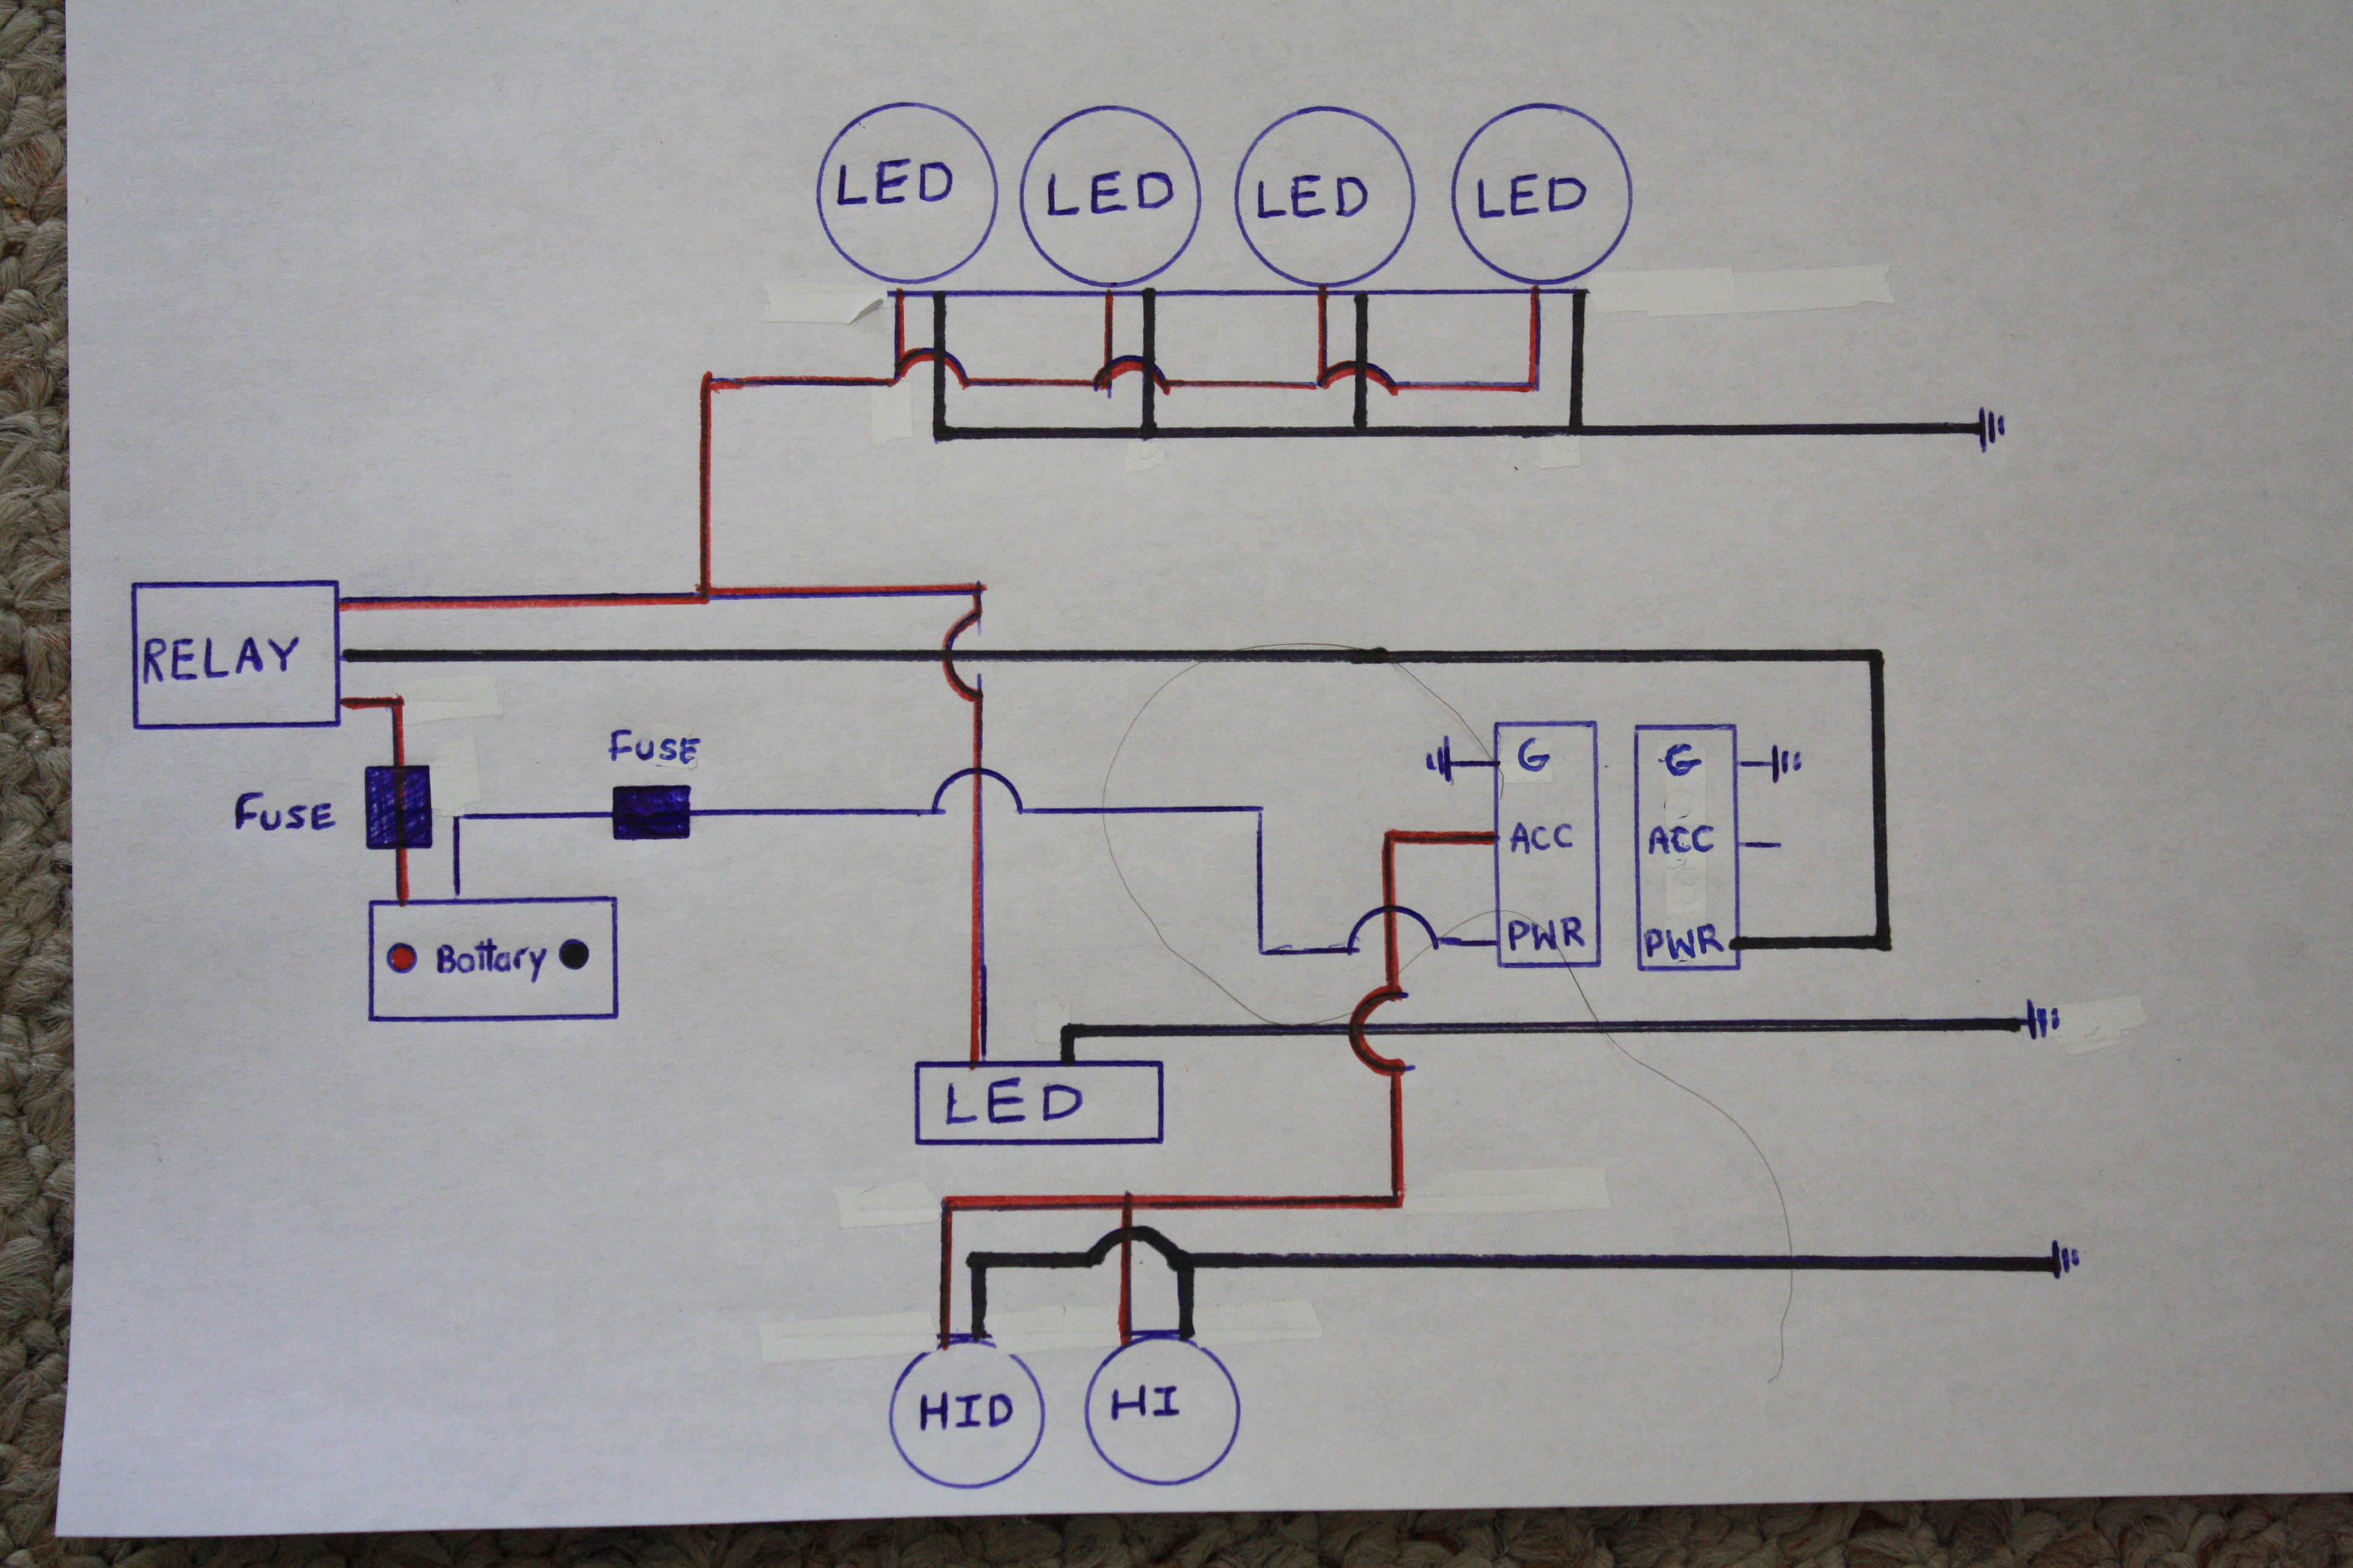 30101d1339028227 wiring led lights hid s img_0898 wiring led lights & hid's yamaha rhino forum rhino forums net wink relay wiring diagram at eliteediting.co